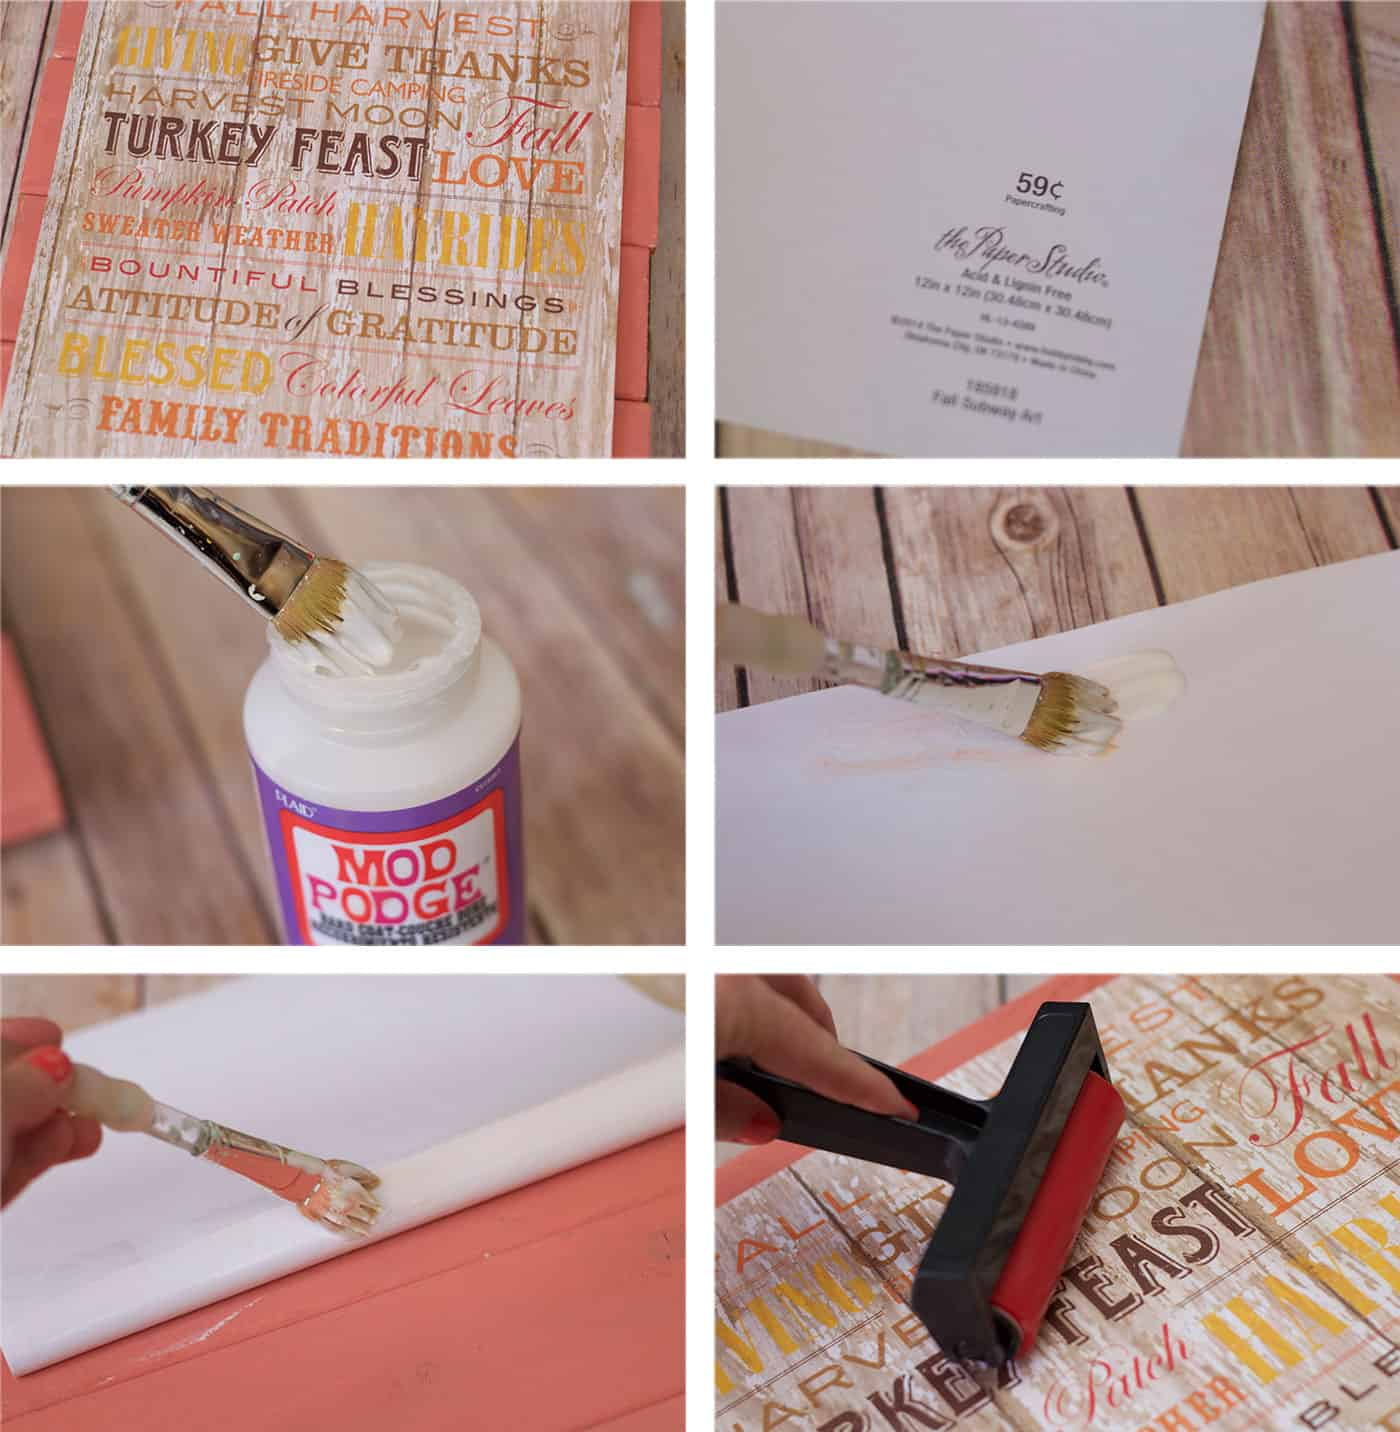 Add Mod Podge to a piece of scrapbook paper and smooth